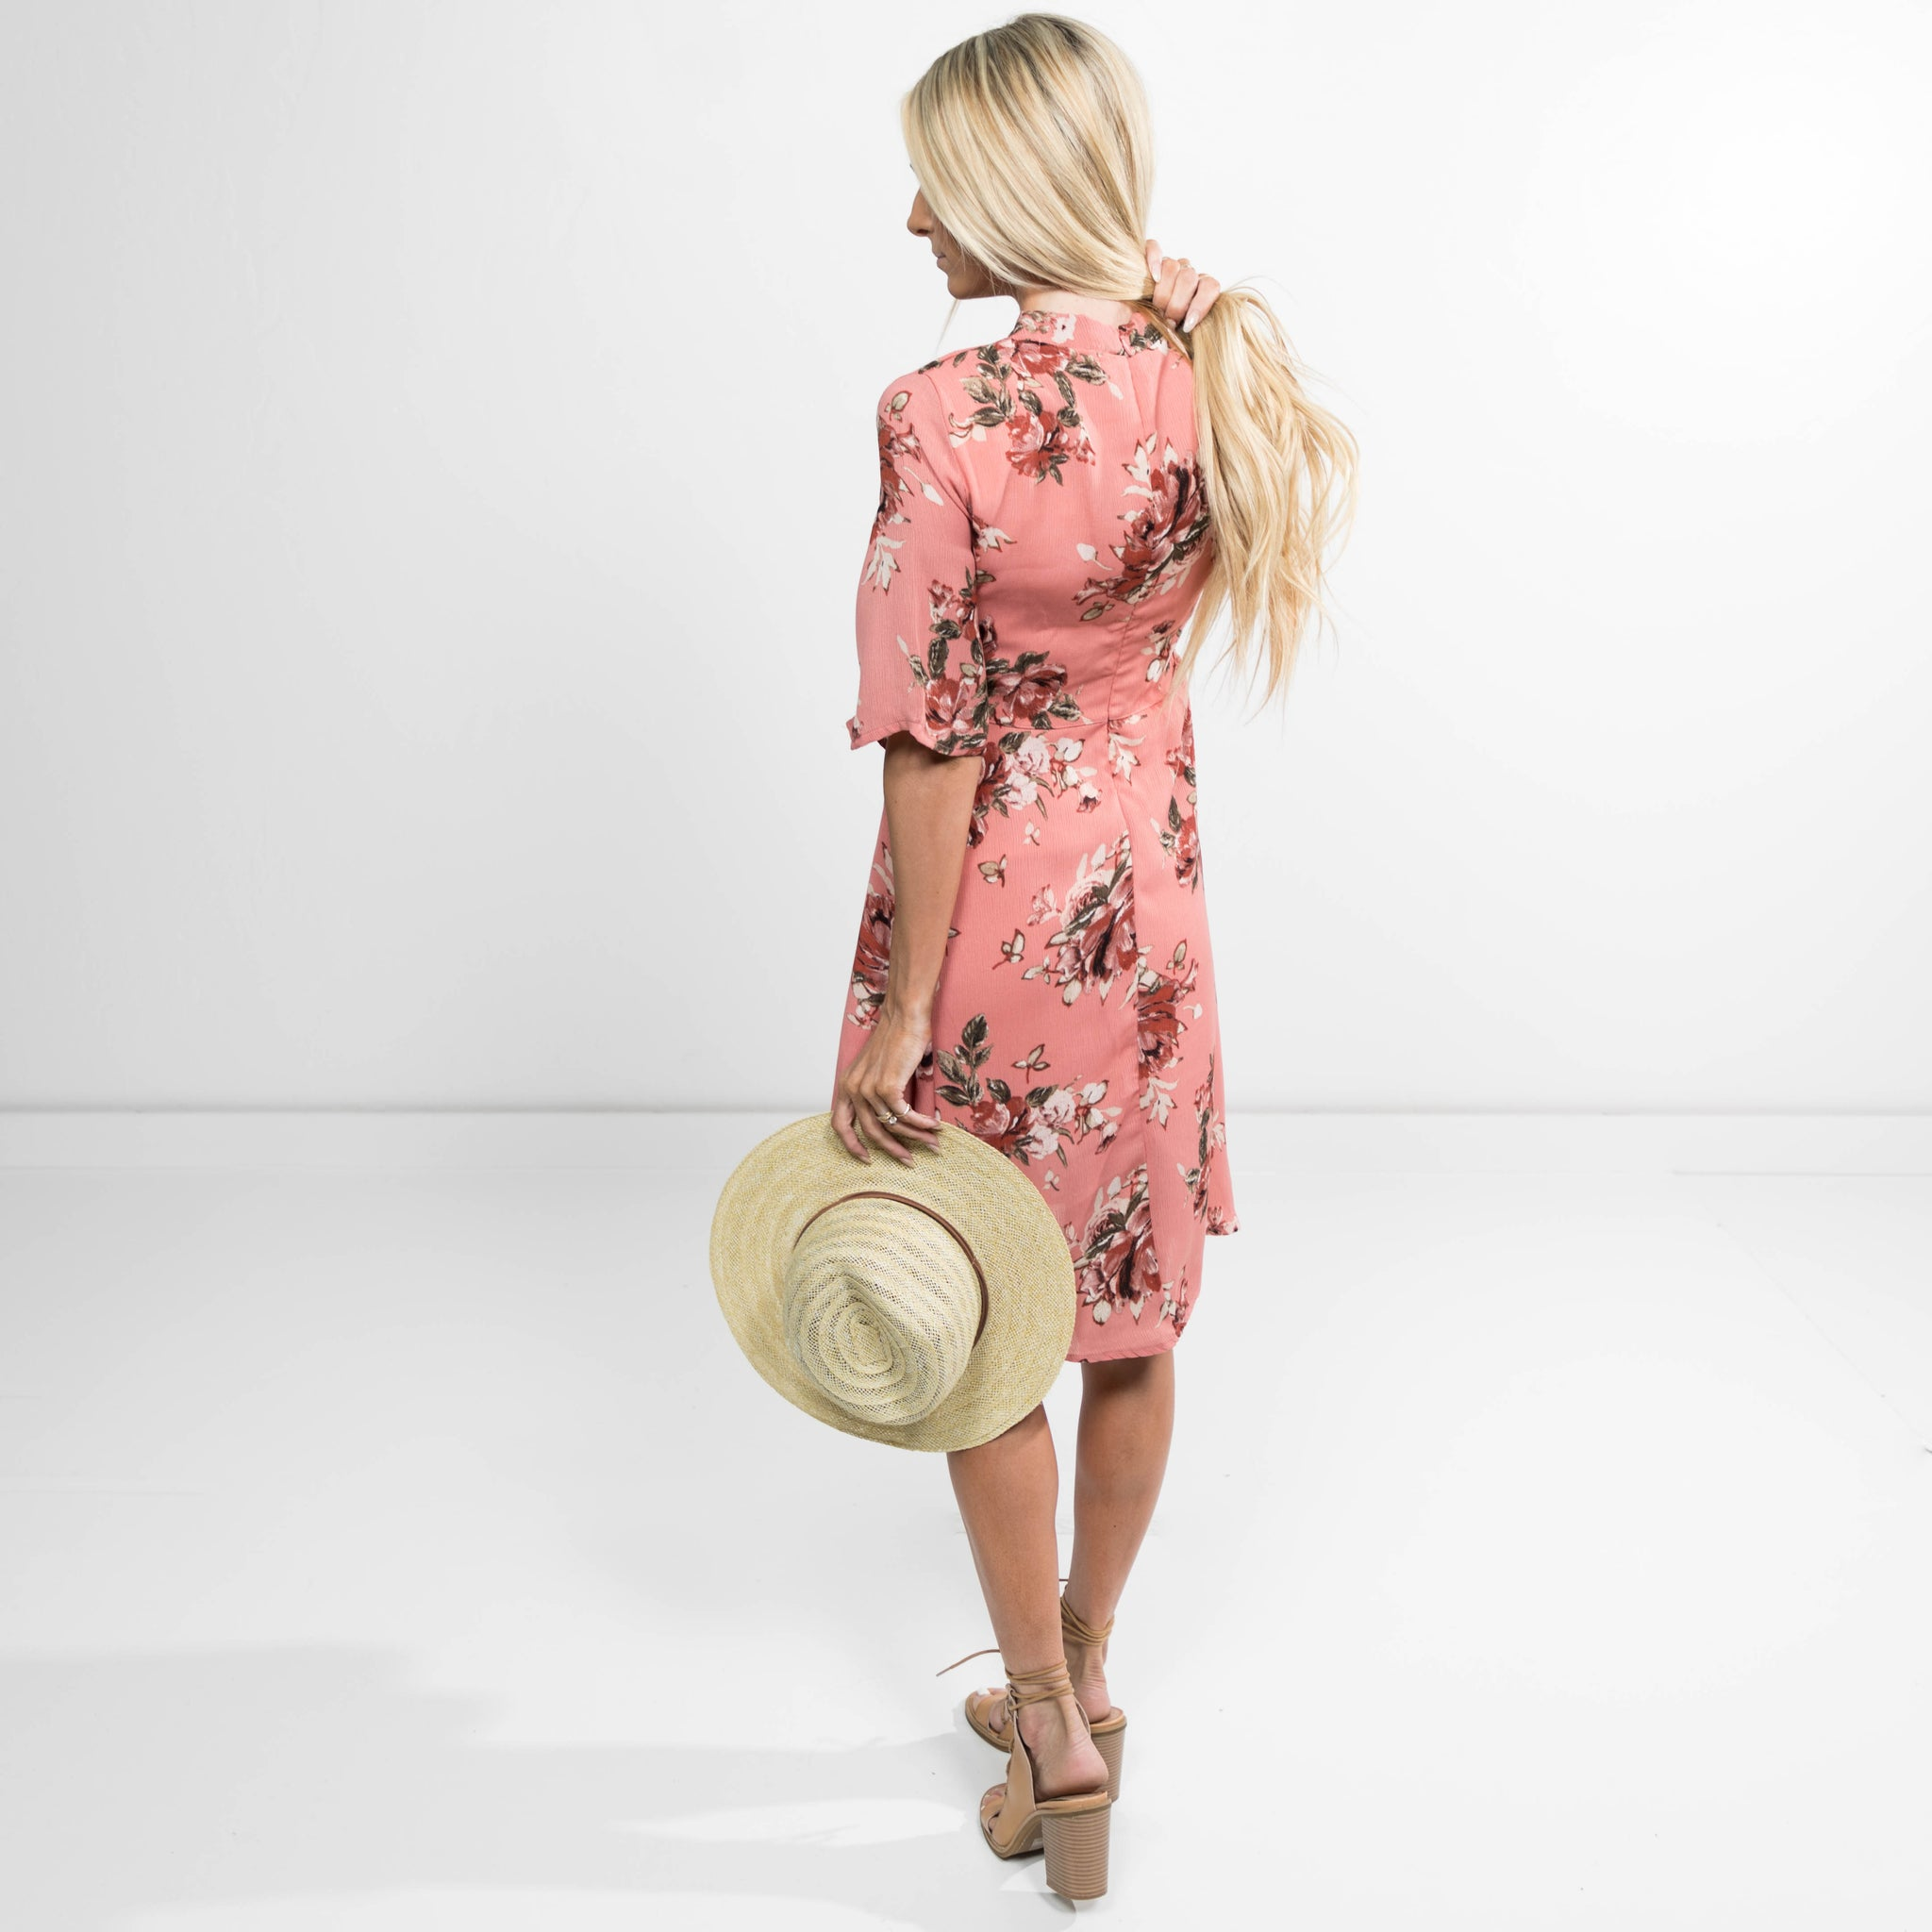 Piper Floral Dress in Blush